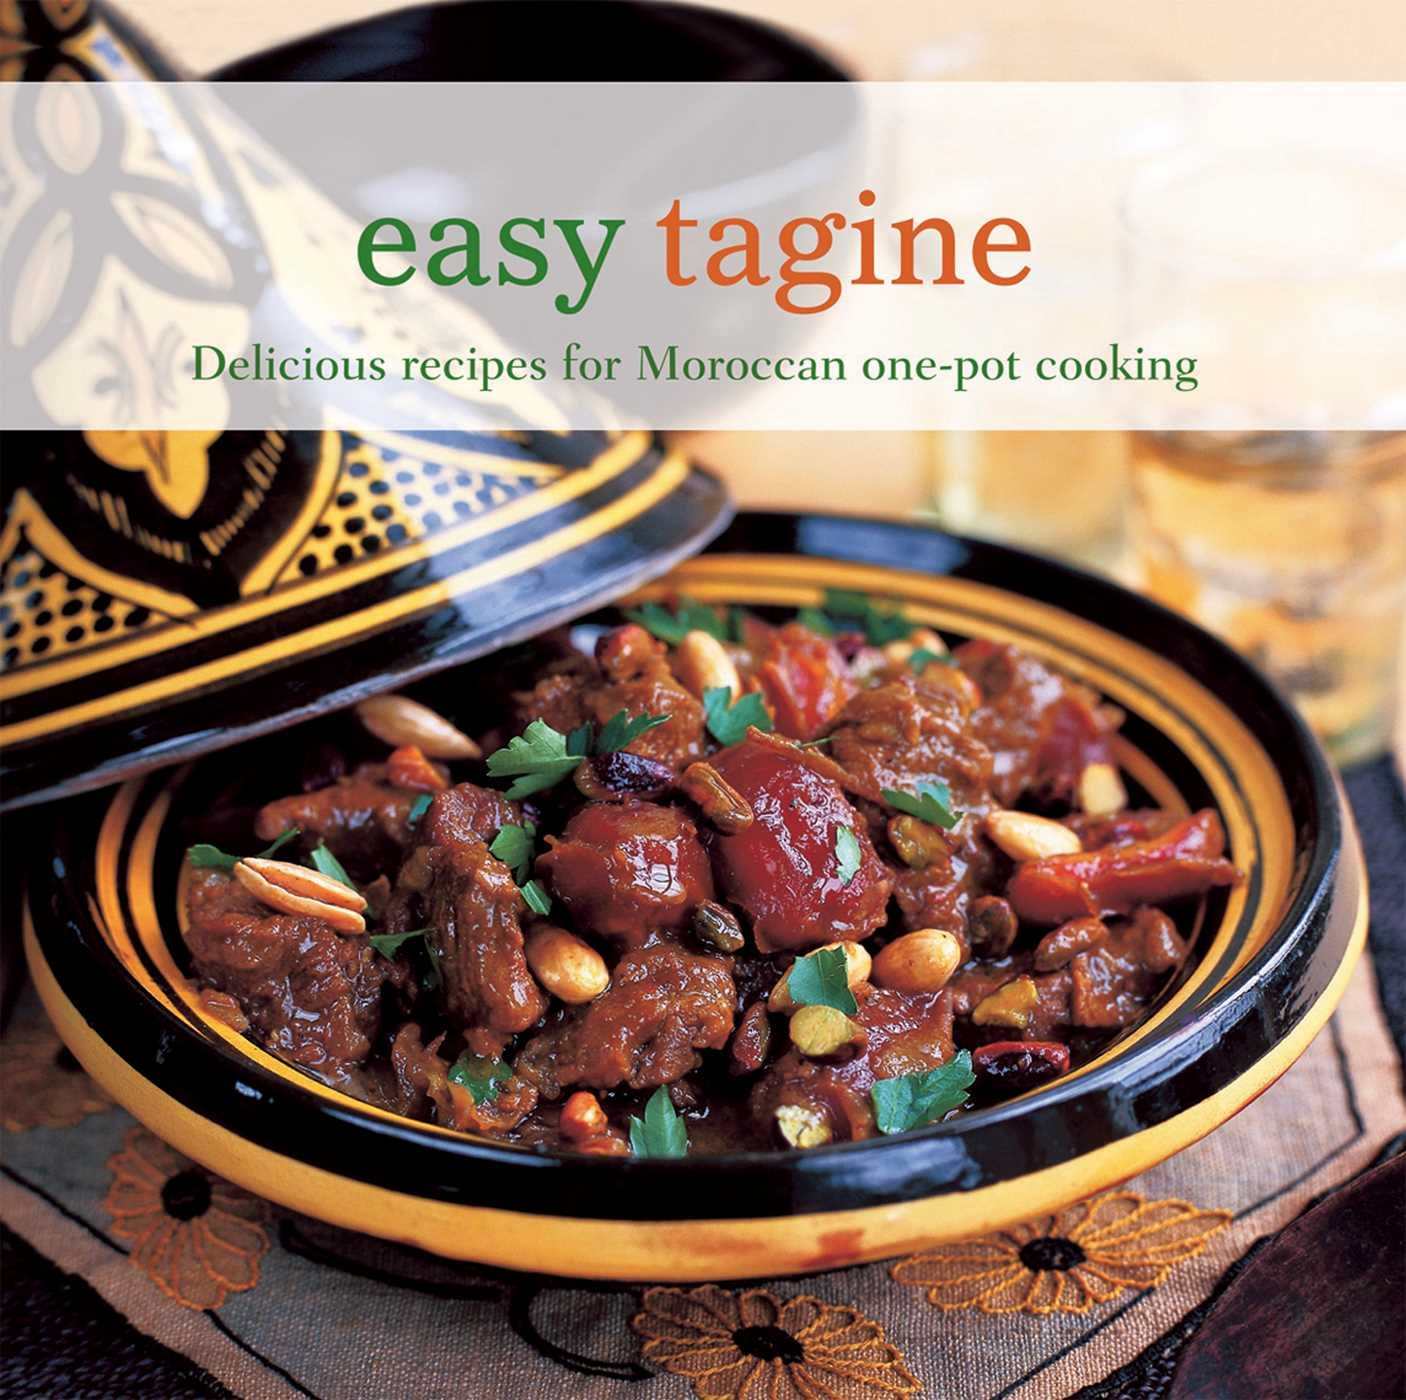 Easy tagine delicious recipes for moroccan one pot cooking easy tagine delicious recipes for moroccan one pot cooking ghillie basan 9781849752831 amazon books forumfinder Image collections